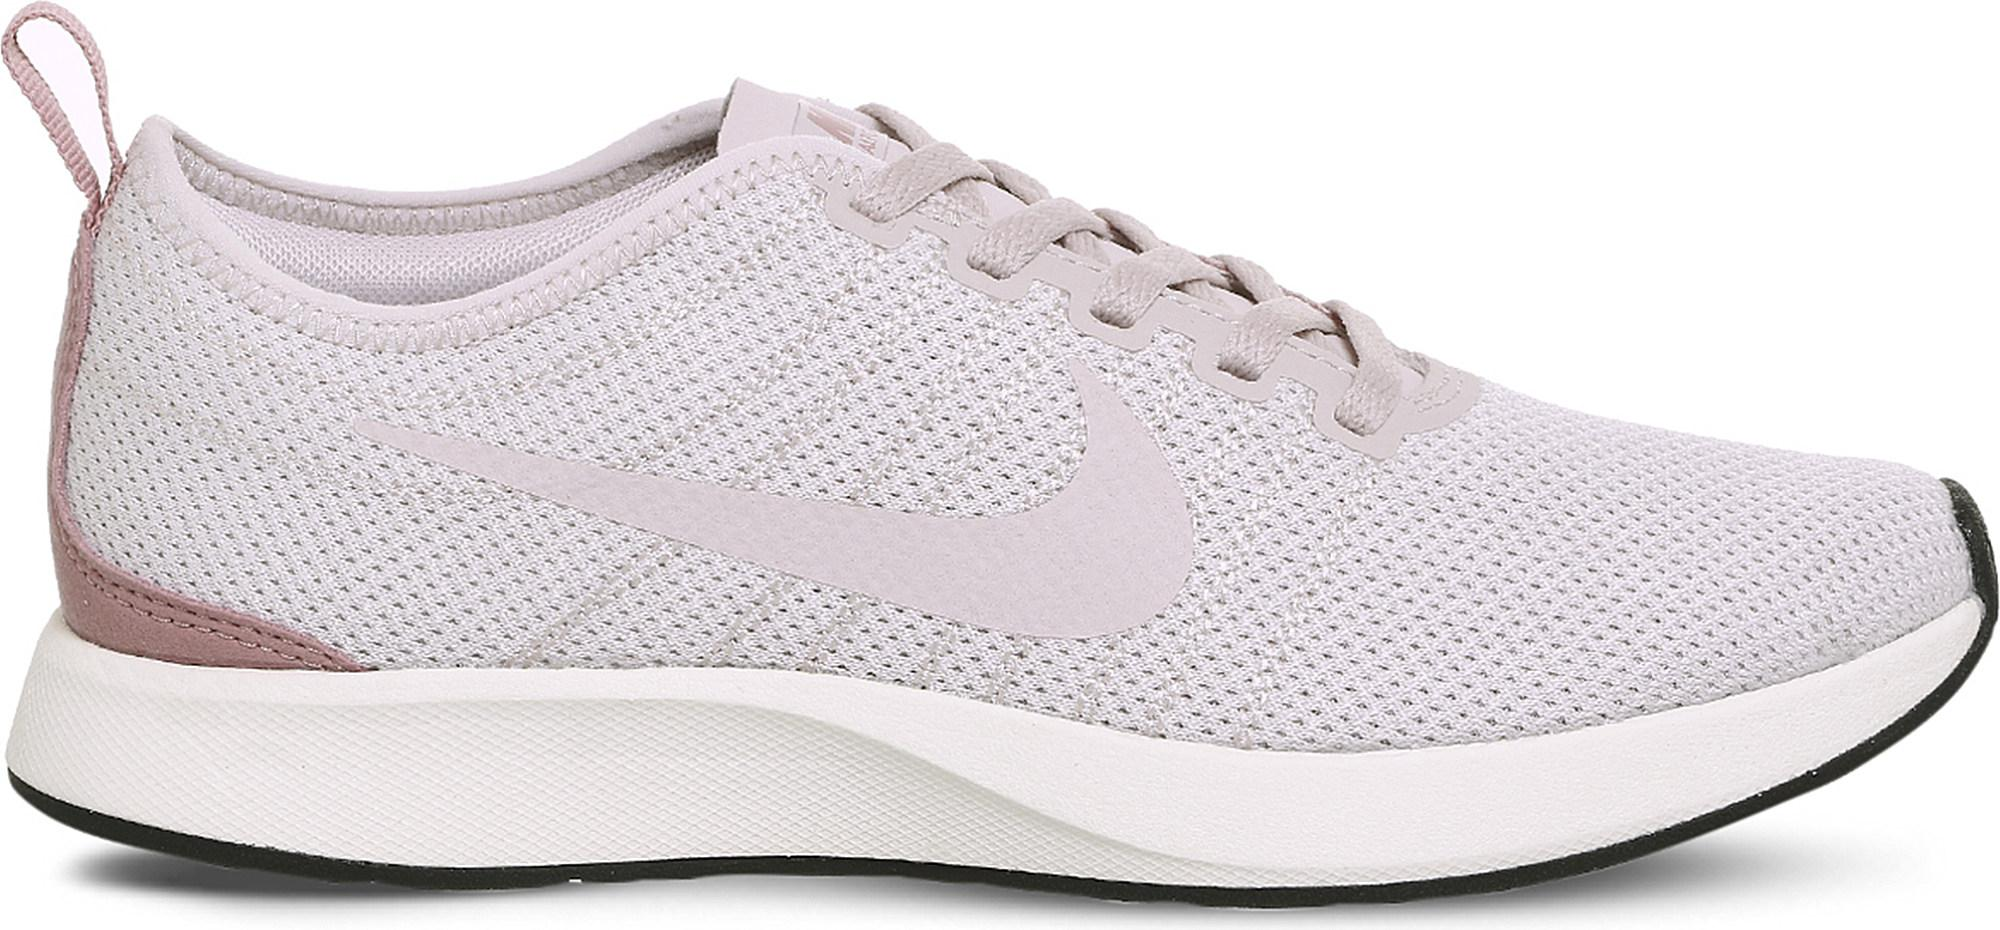 bc873b1f1dd2 Lyst - Nike Dualtone Racer Mesh Trainers for Men